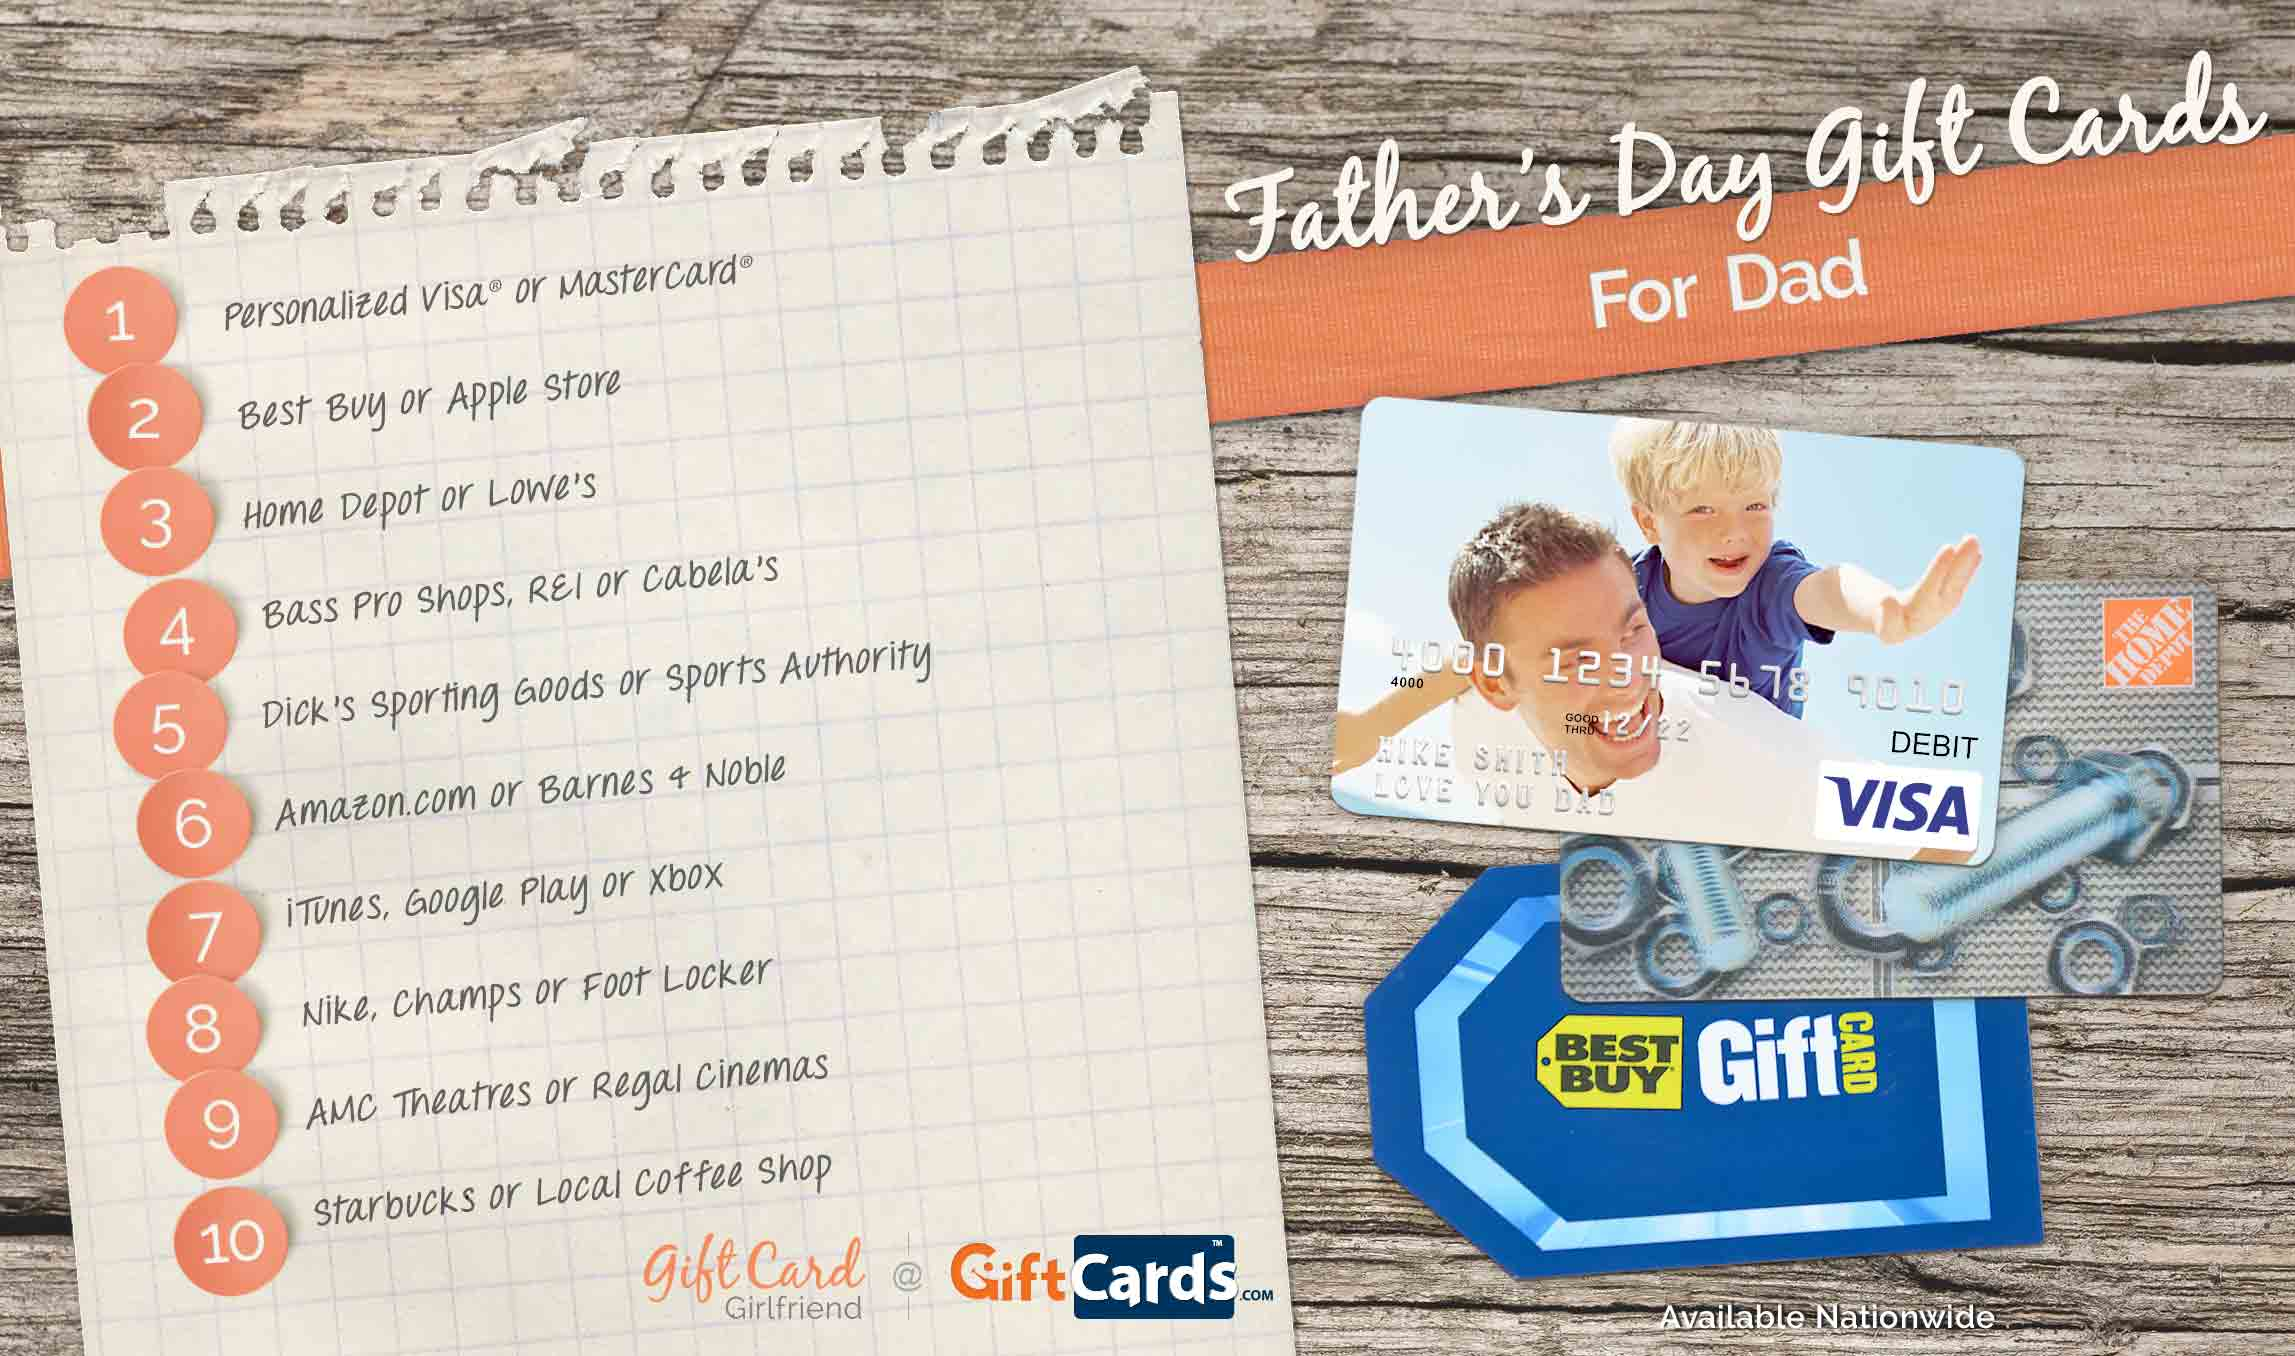 Top 10 Father's Day Gift Cards for Dads | GCG